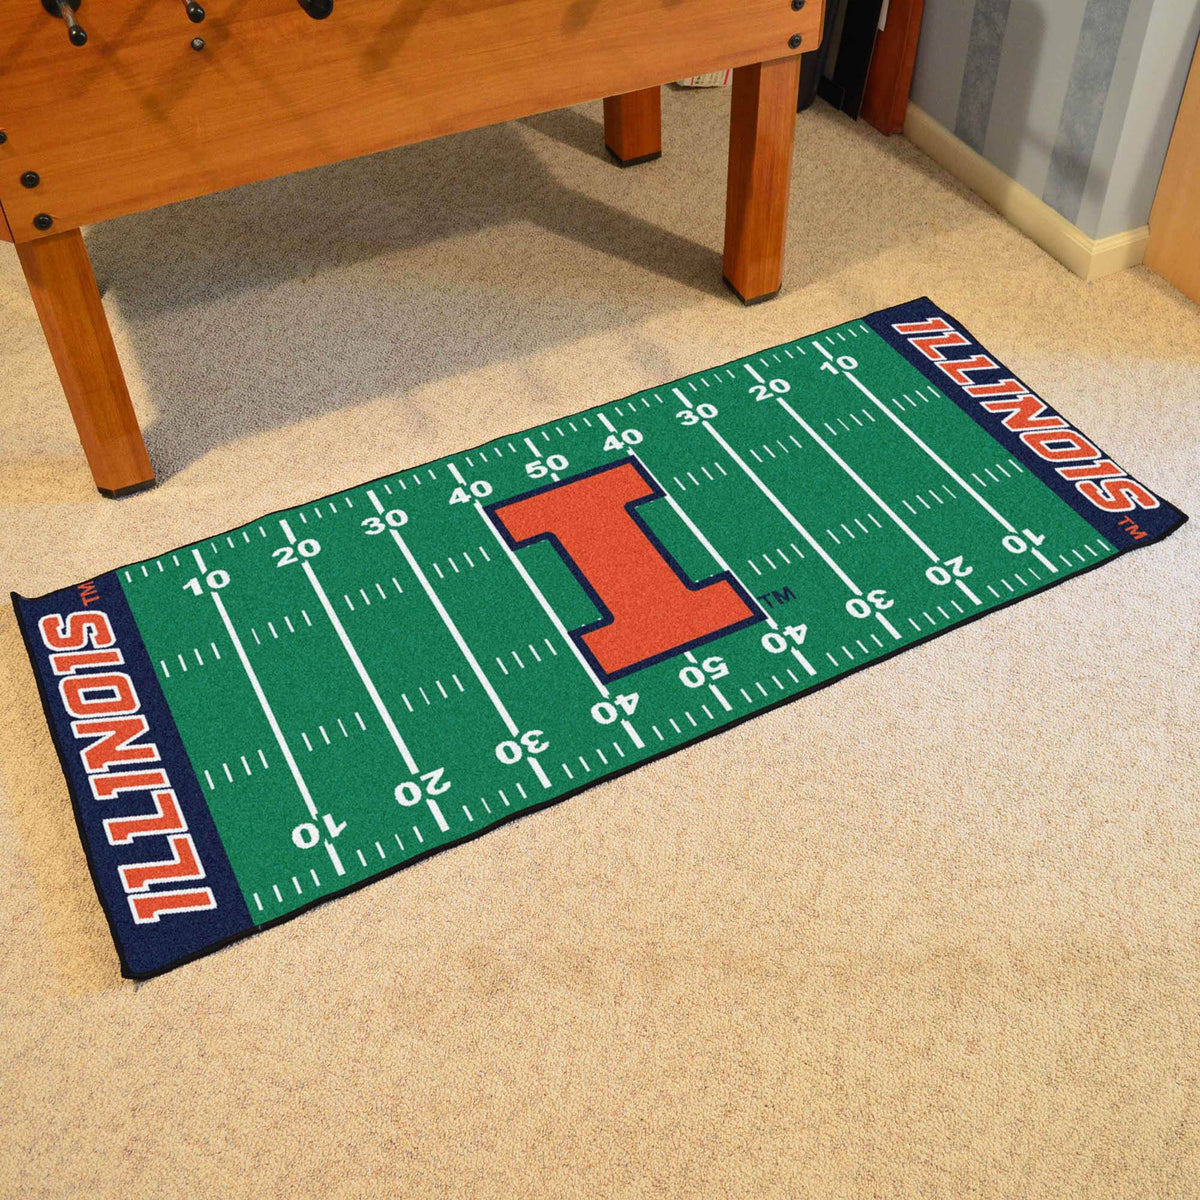 Collegiate - Football Field Runner Collegiate Mats, Rectangular Mats, Football Field Runner, Collegiate, Home Fan Mats Illinois